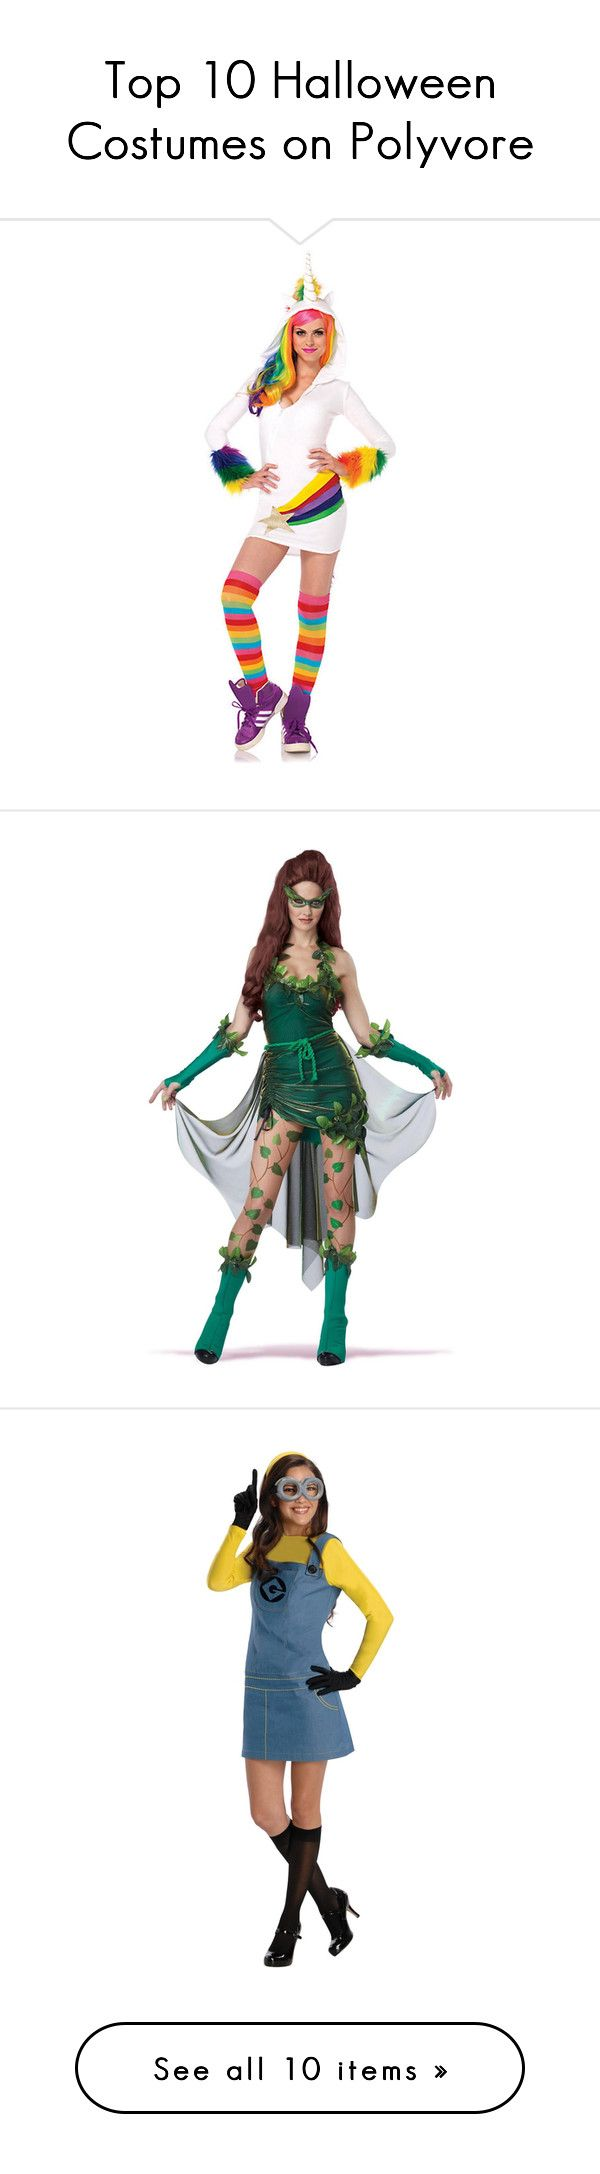 """""""Top 10 Halloween Costumes on Polyvore"""" by polyvore-editorial ❤ liked on Polyvore featuring Halloween, costumes, halloween costumes, multicolor, womens halloween costumes, star costume, sexy halloween costumes, leg avenue costumes, rainbow unicorn costume and black leather costume"""